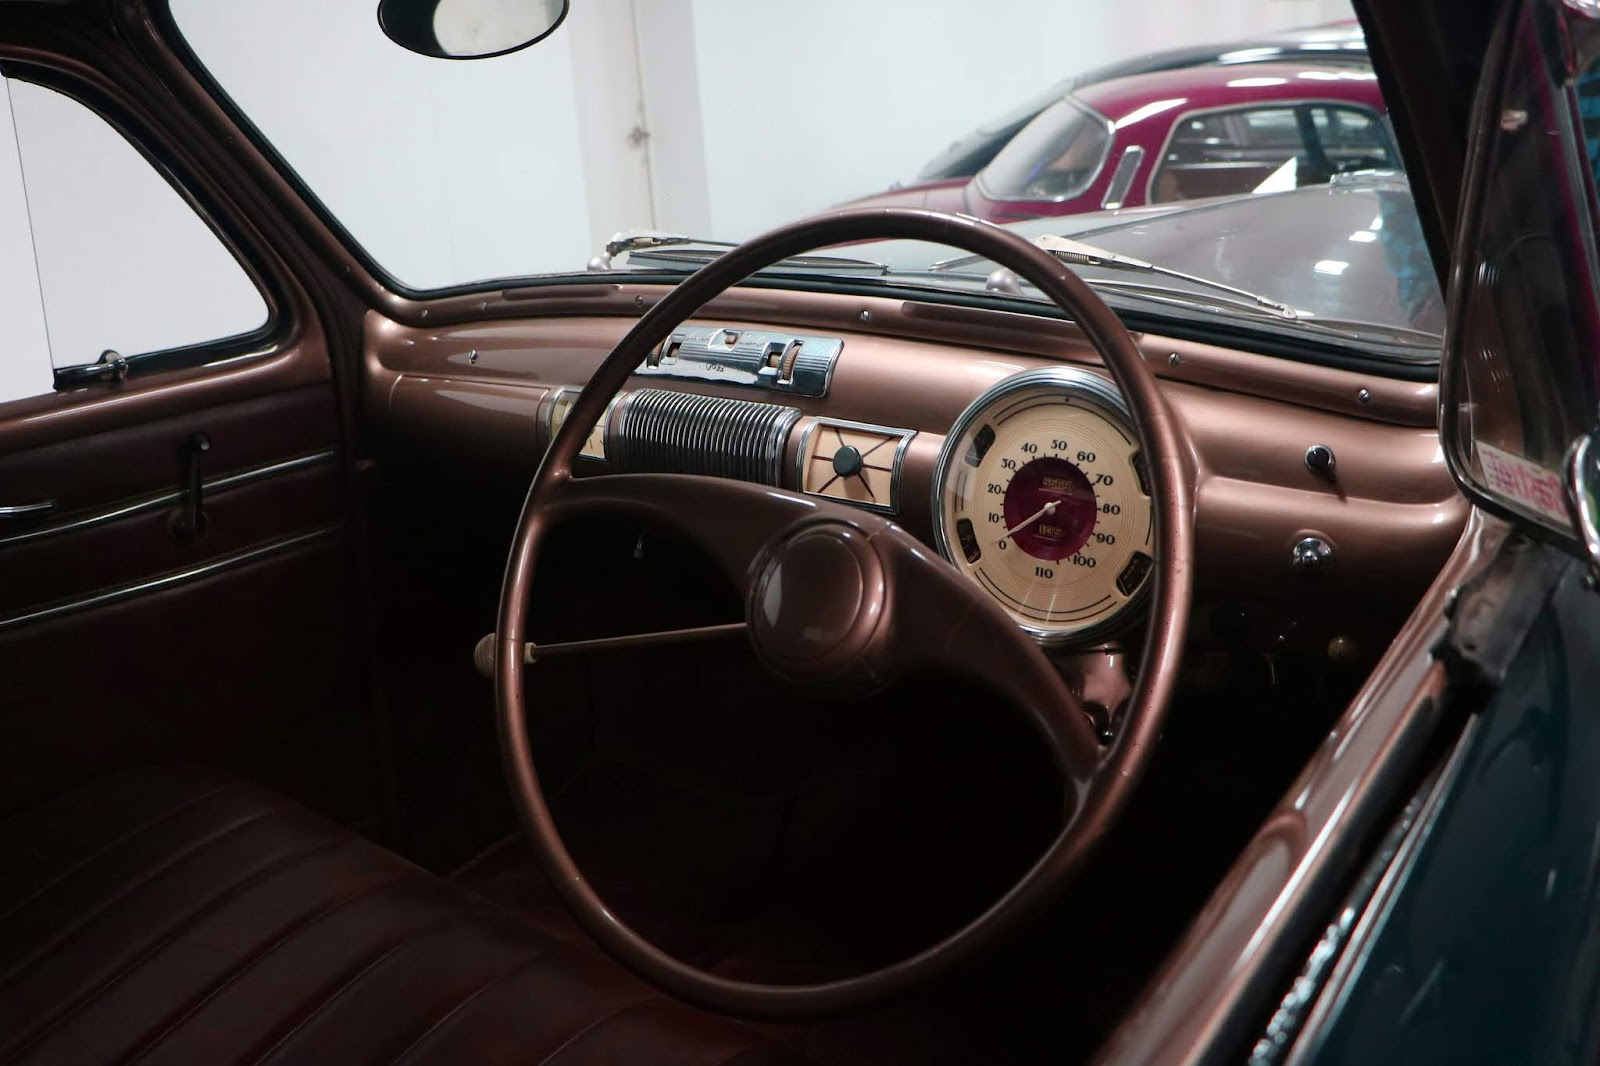 Carl_Lindner_Collection - 1930 Lincoln Zephyr 08.JPG